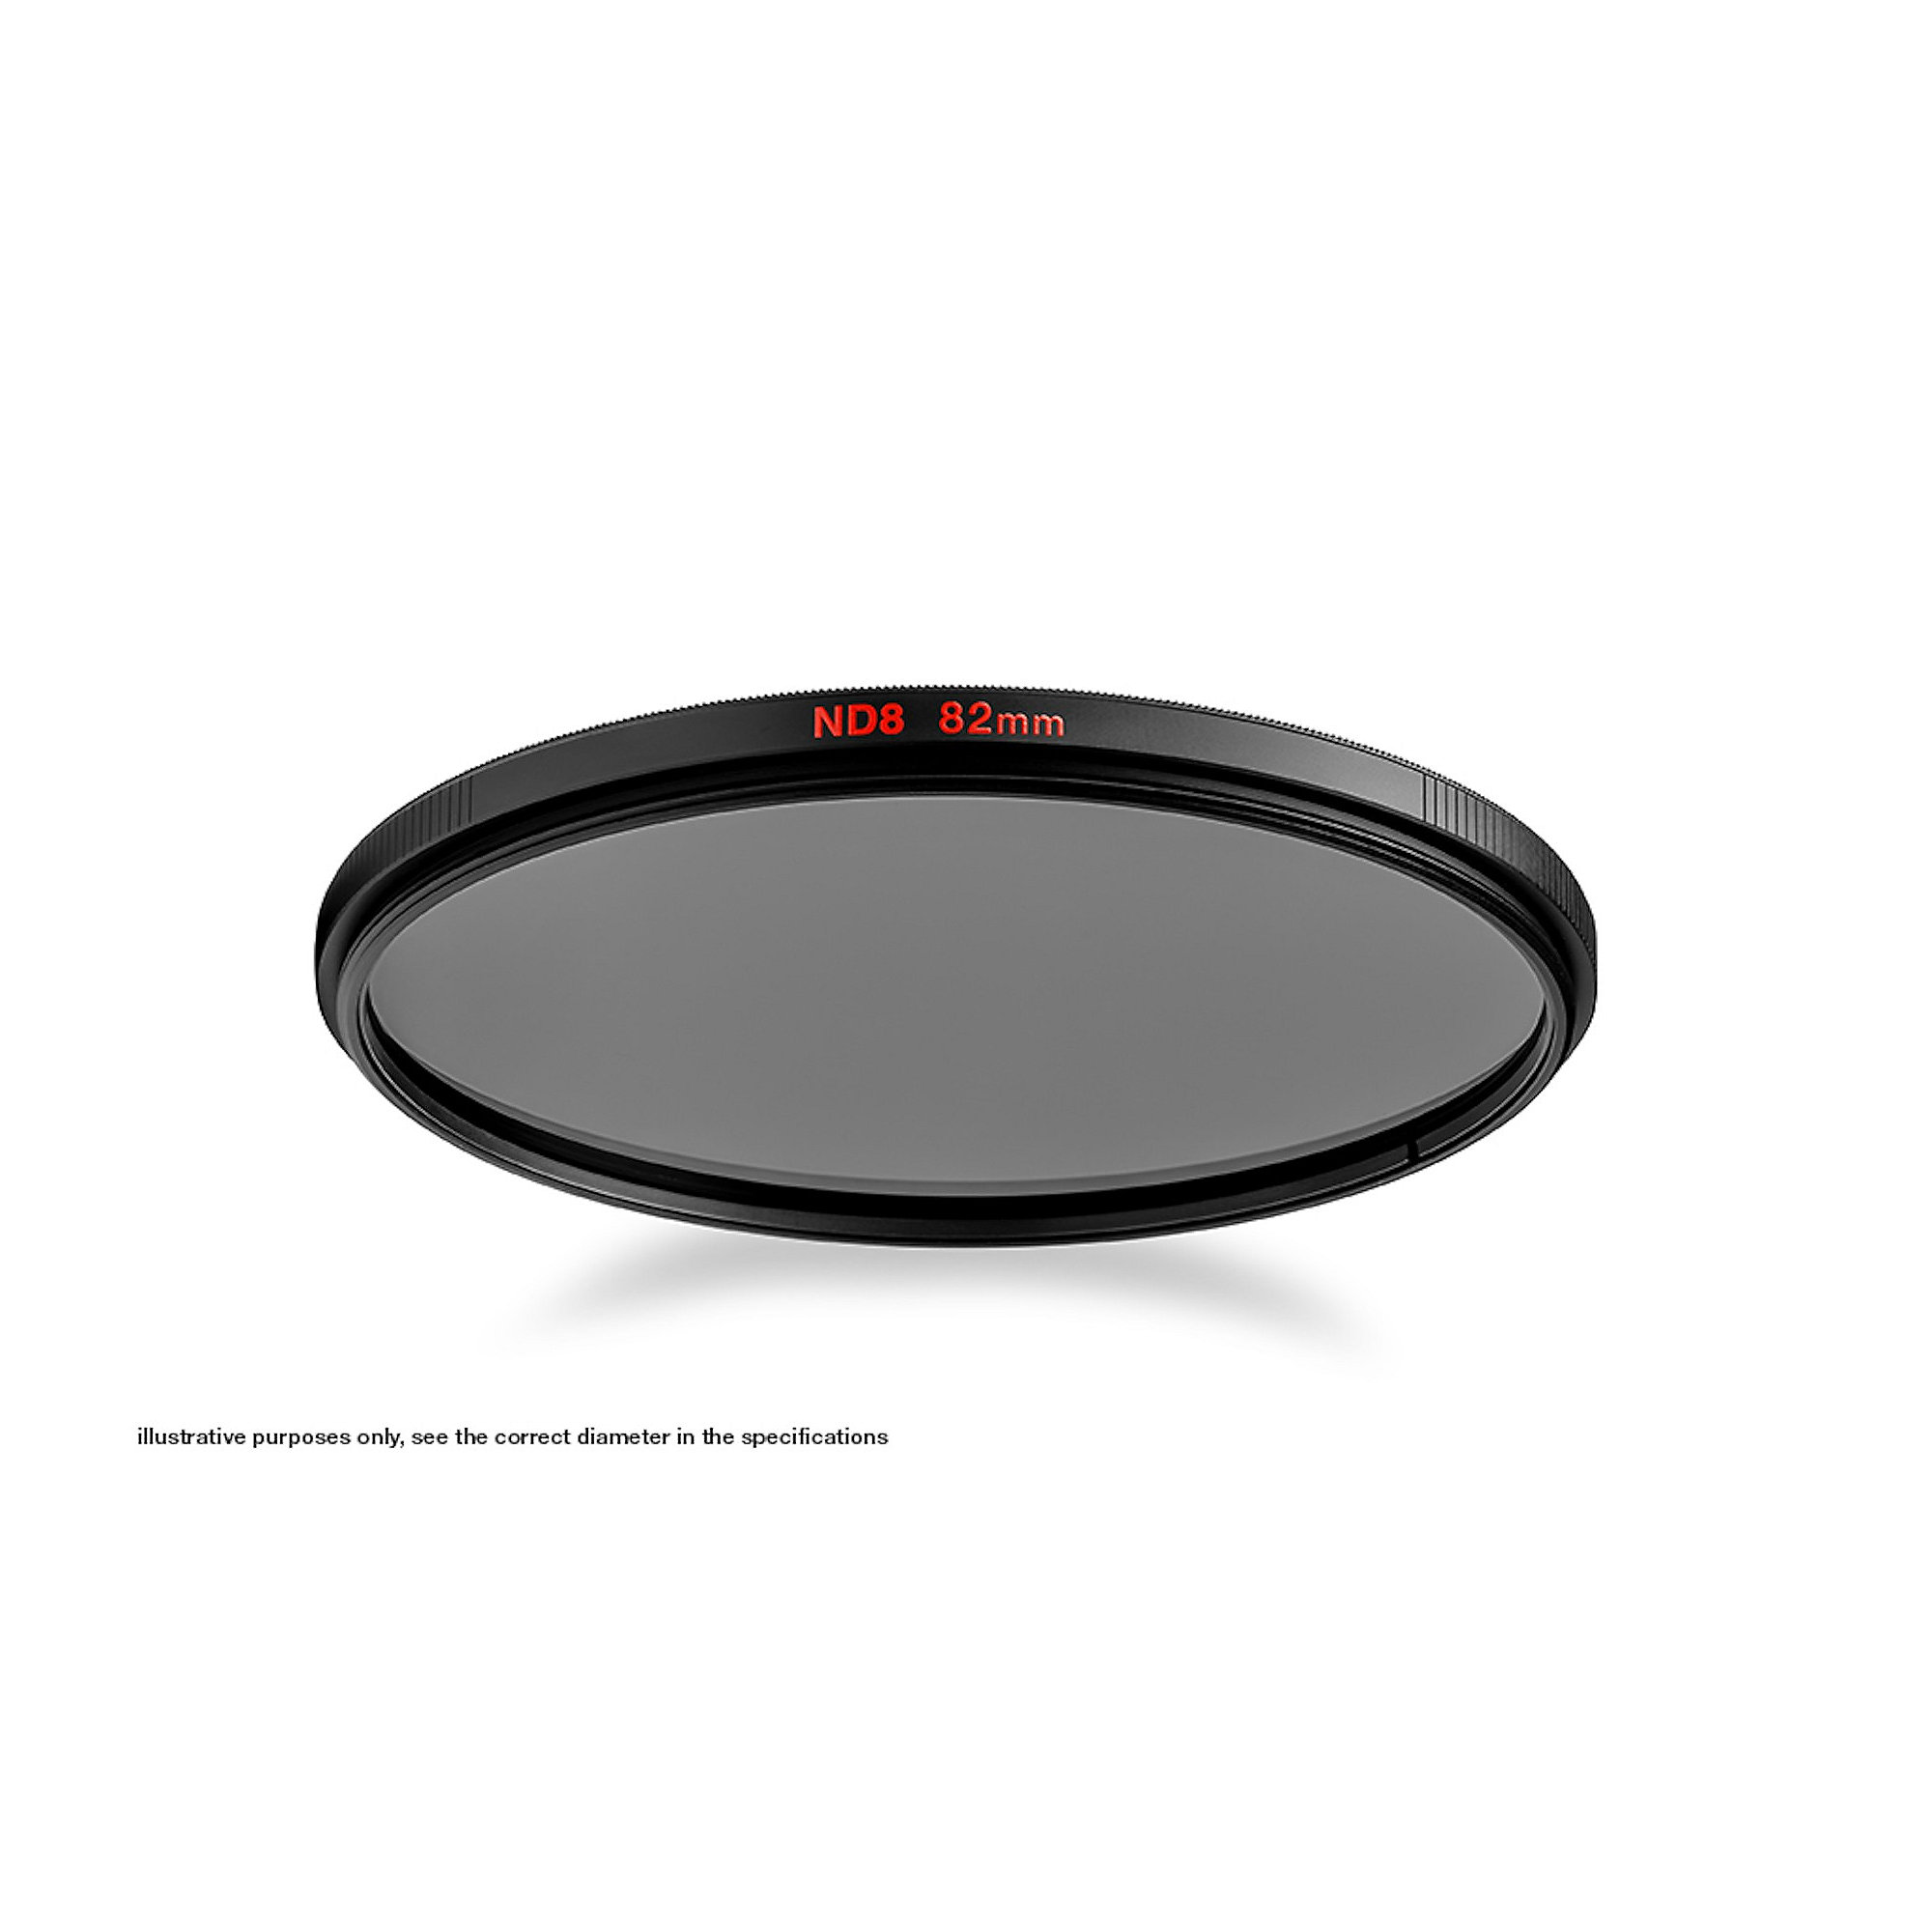 Manfrotto ND8 Graufilter 52 mm